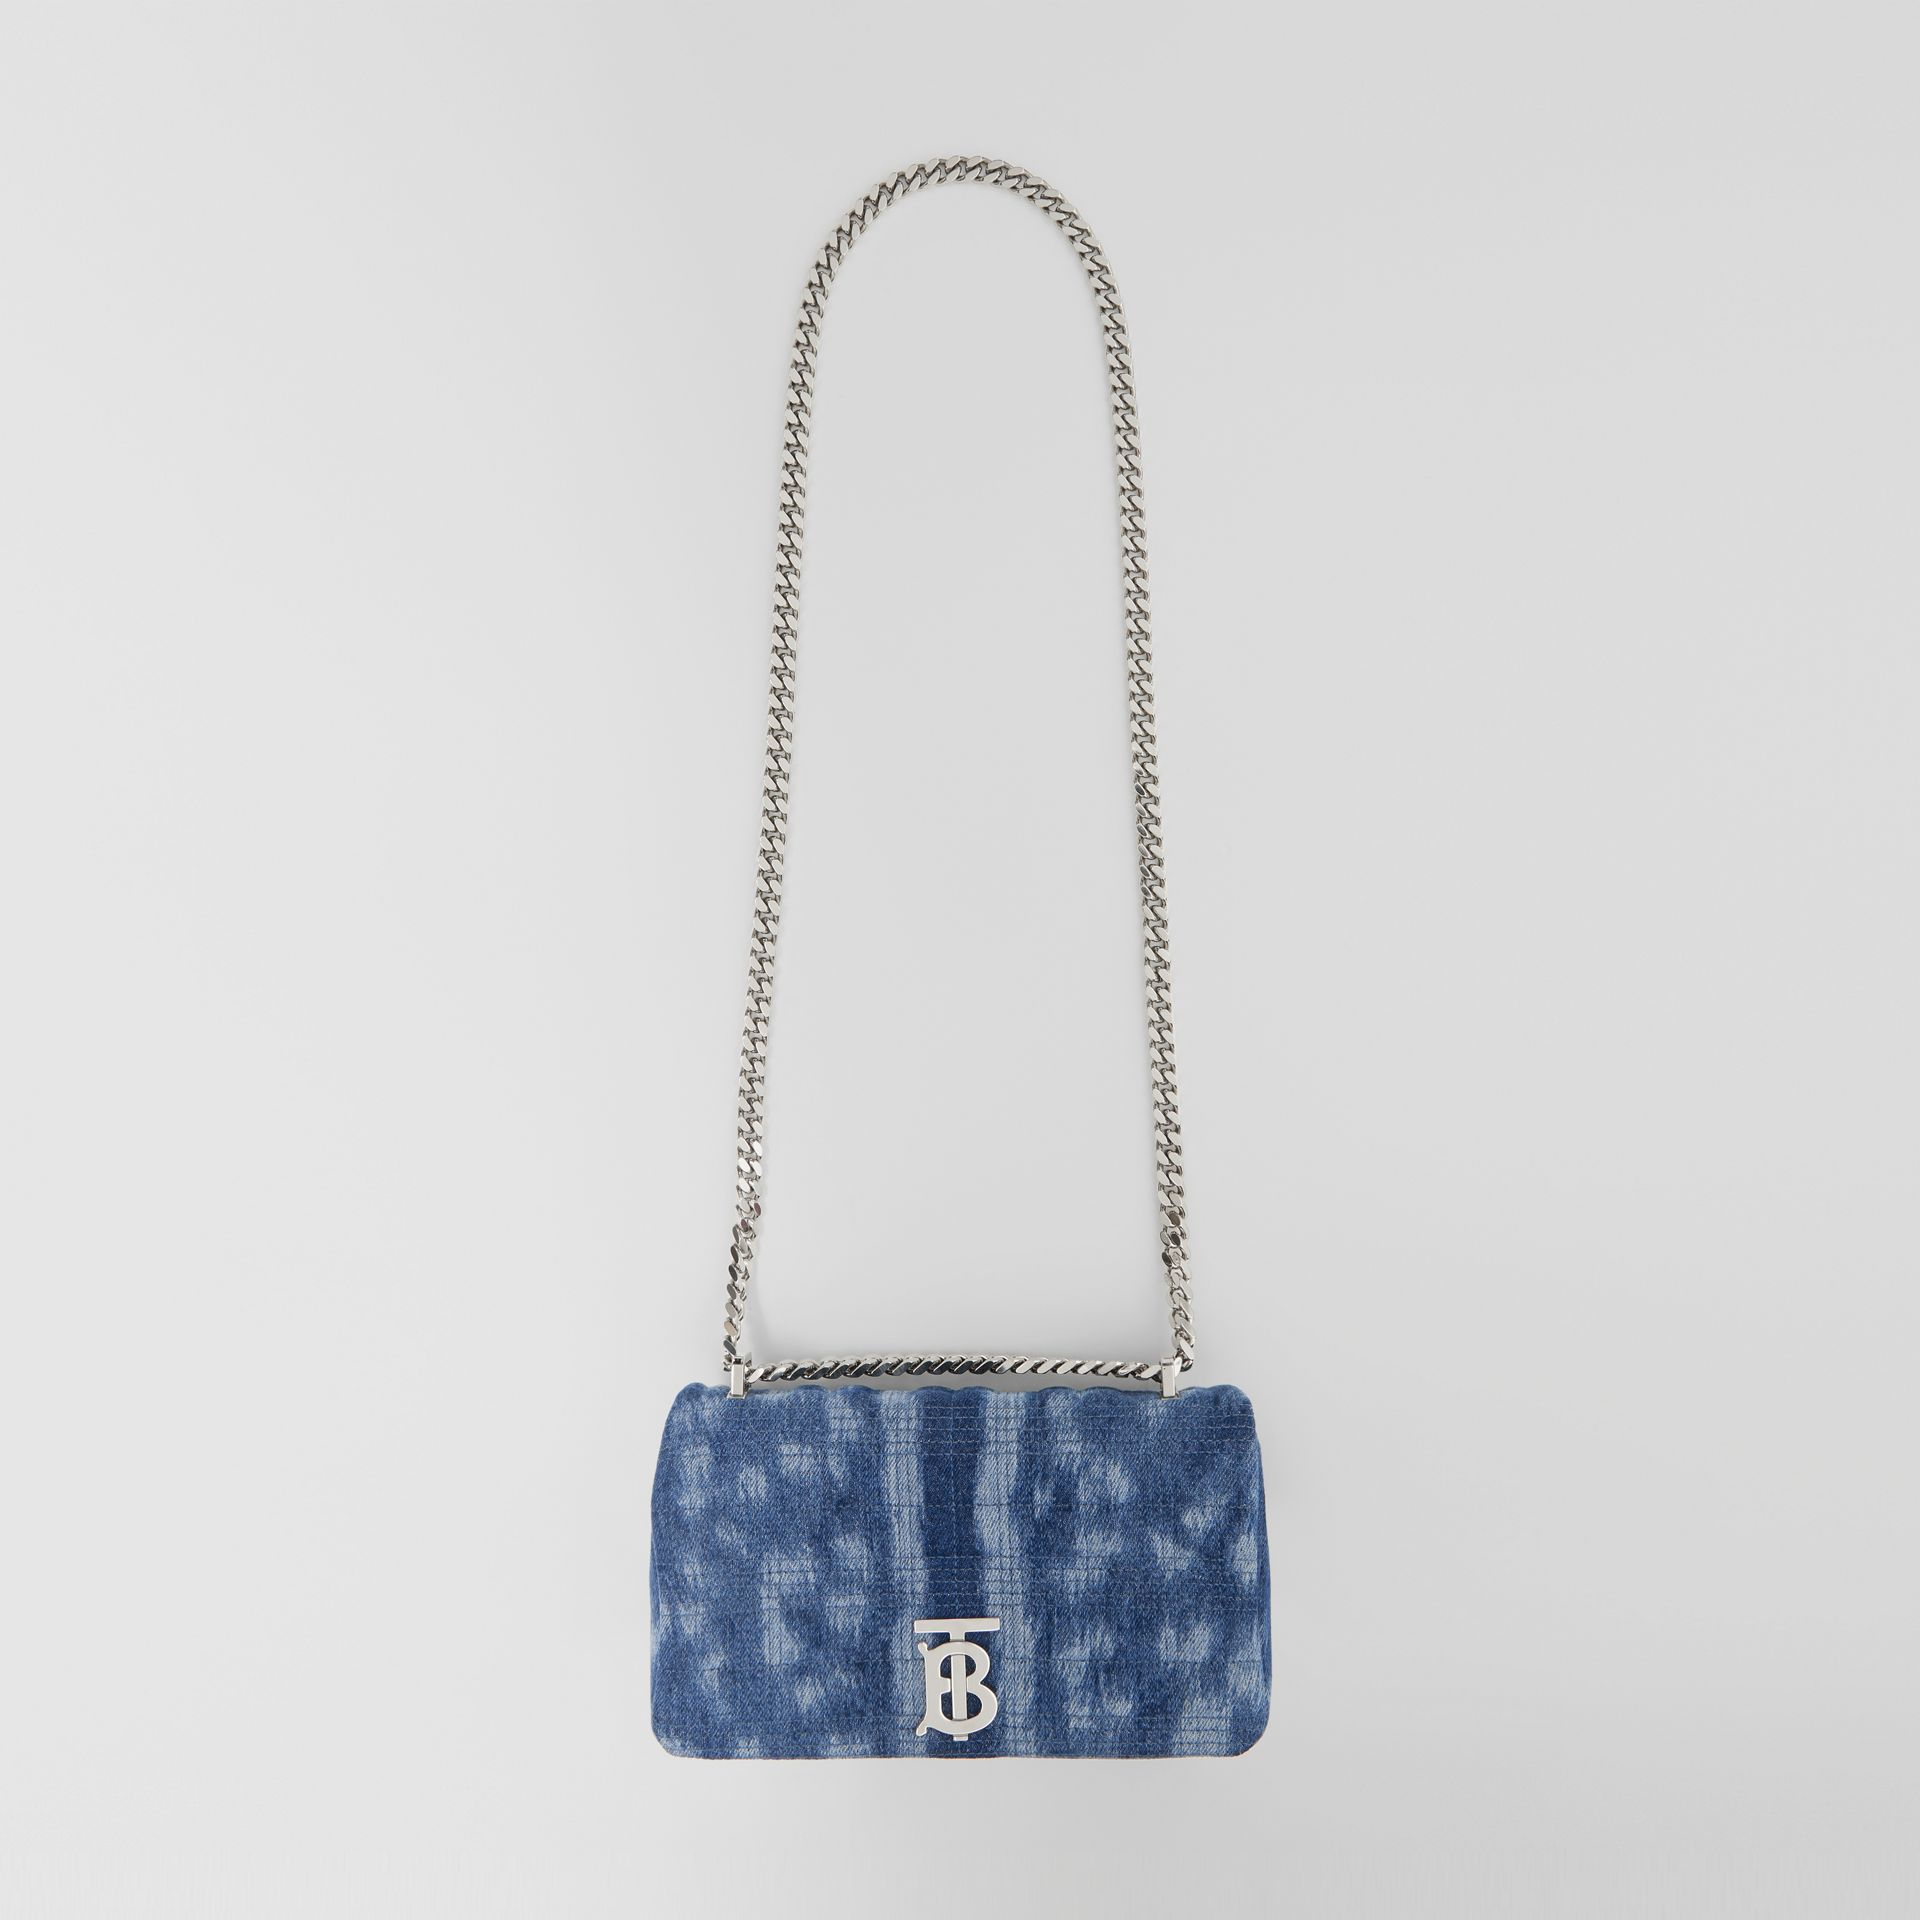 Small Quilted Denim Lola Bag in Blue - Women | Burberry Canada - gallery image 3